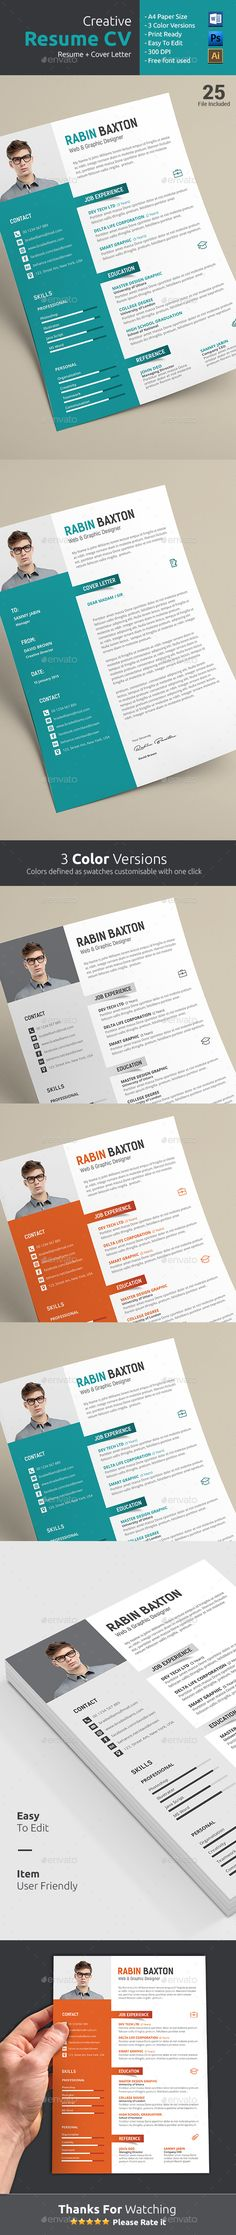 Resume The 1222 best Infographic Visual Resumes